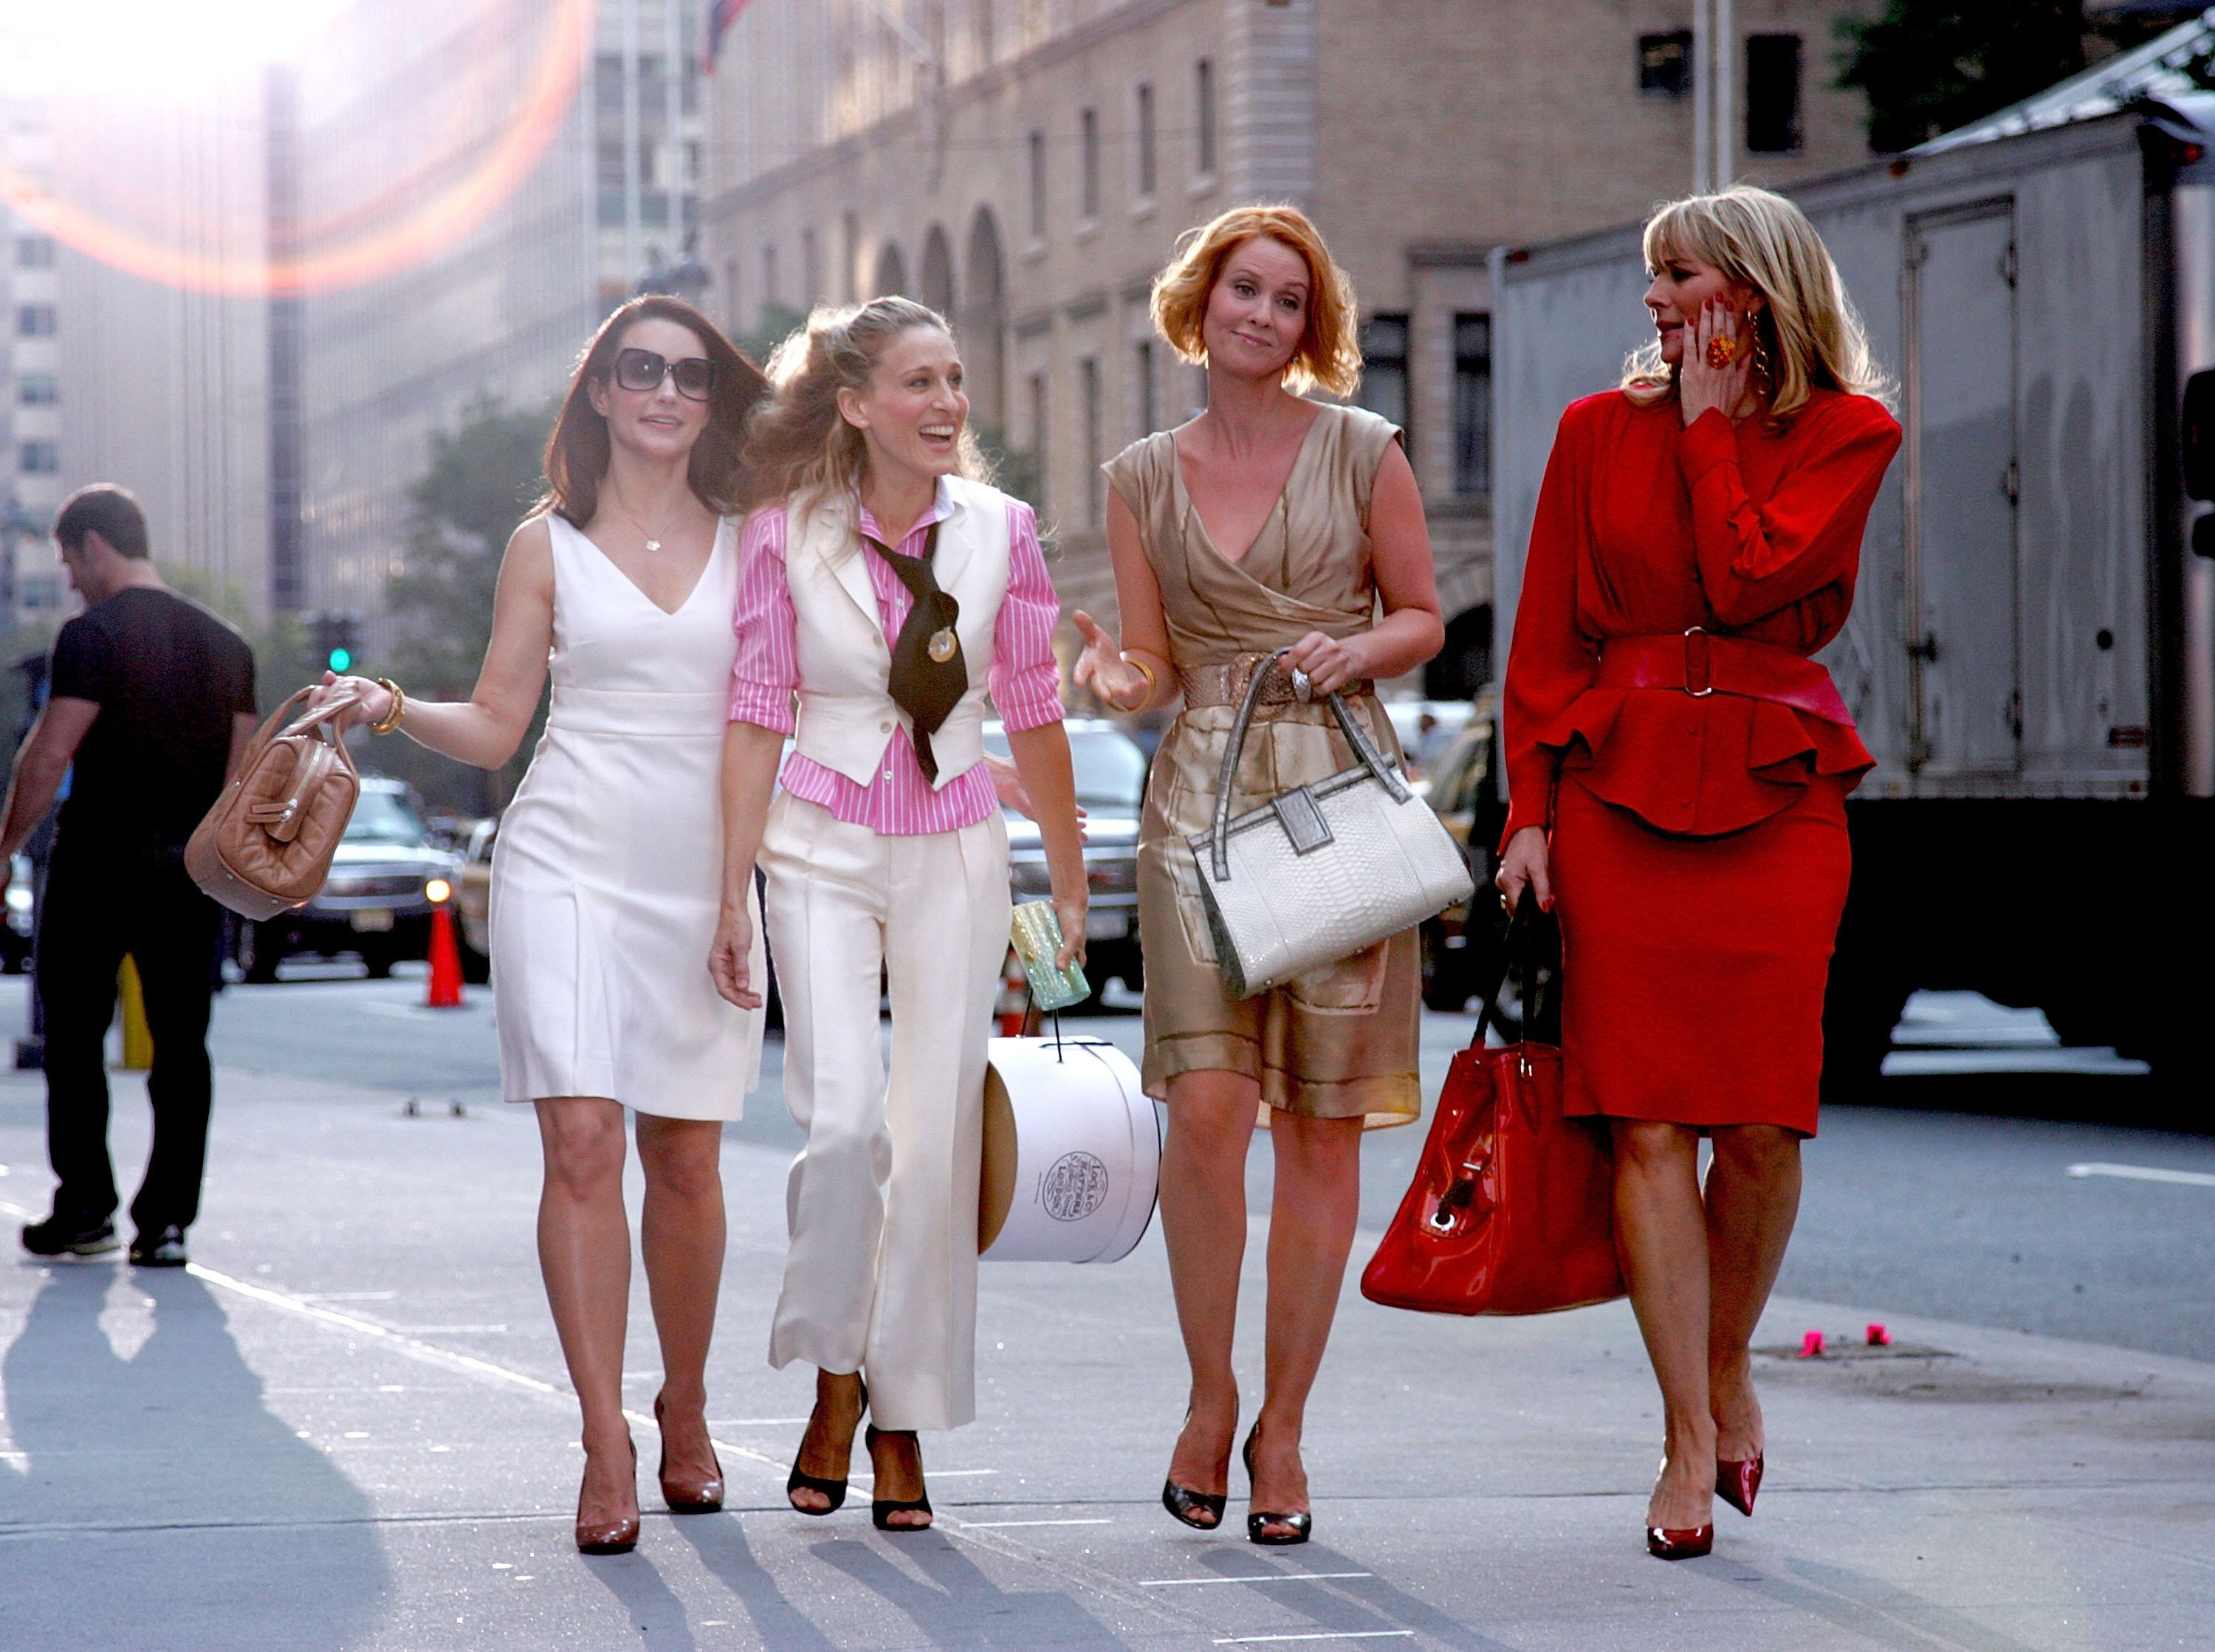 NEW YORK - SEPTEMBER 21:  Actresses Kristin Davis, Sarah Jessica Parker, Cynthia Nixon and Kim Cattrall on the set of 'Sex In The City: The Movie' in New York City on September 21, 2007.  (Photo by James Devaney/WireImage)